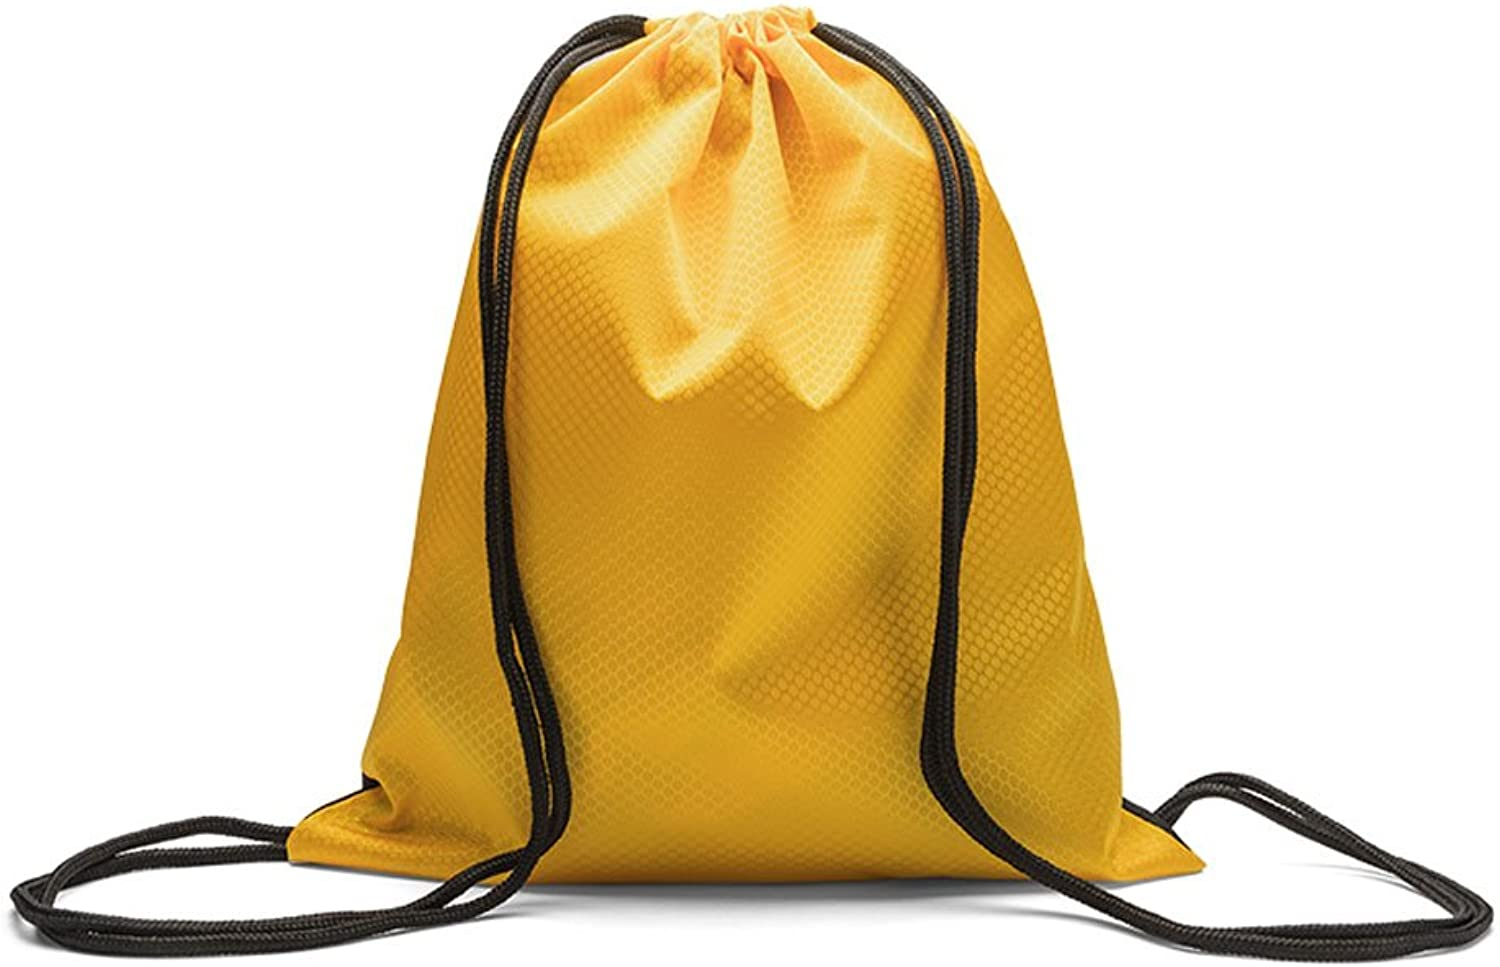 DFGdf Waterproof Oxford Cloth Bundle Pocket Sports Shoulder Bag Pull Rope Men and Women Small Backpack (color   Yellow)